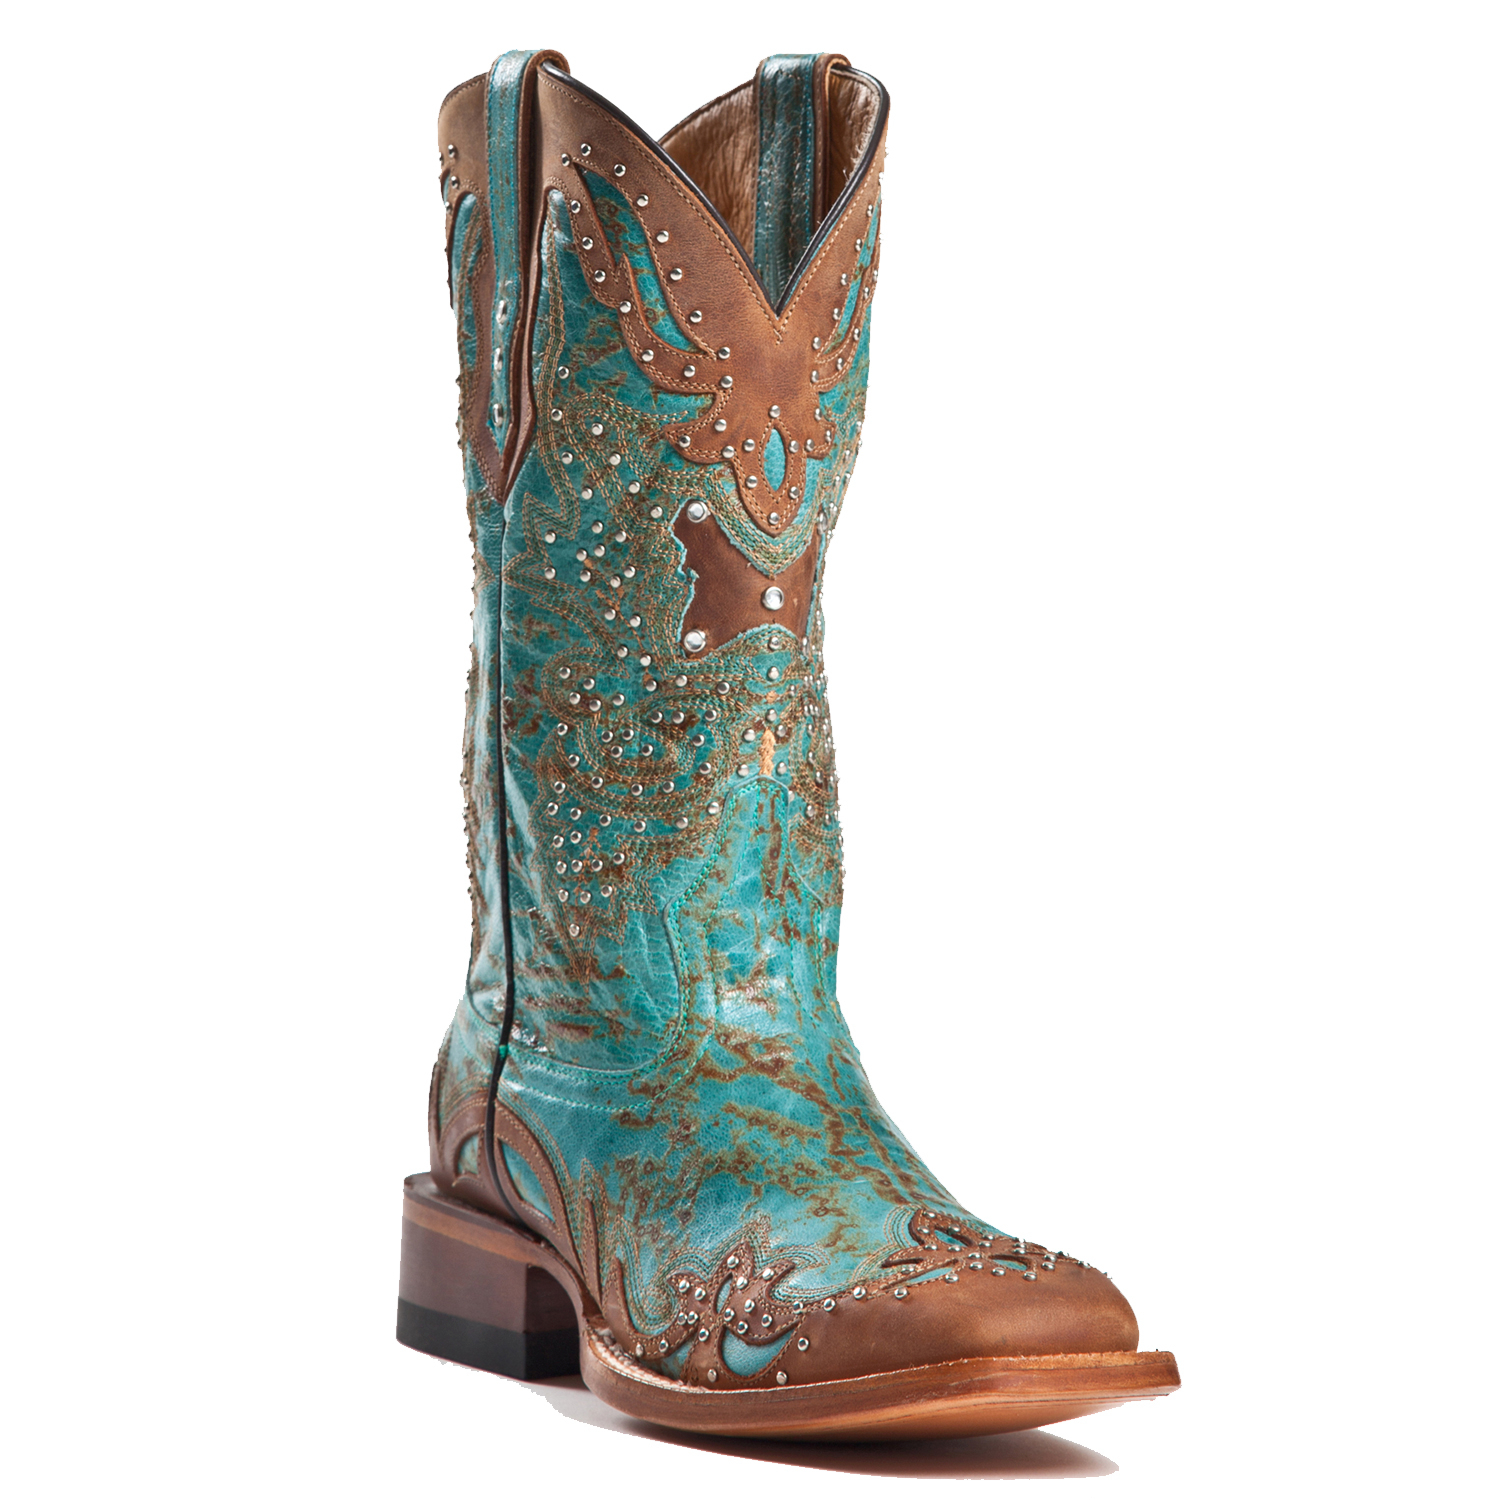 Fashion Cowboy Boots For Women Cheap nAznrIed